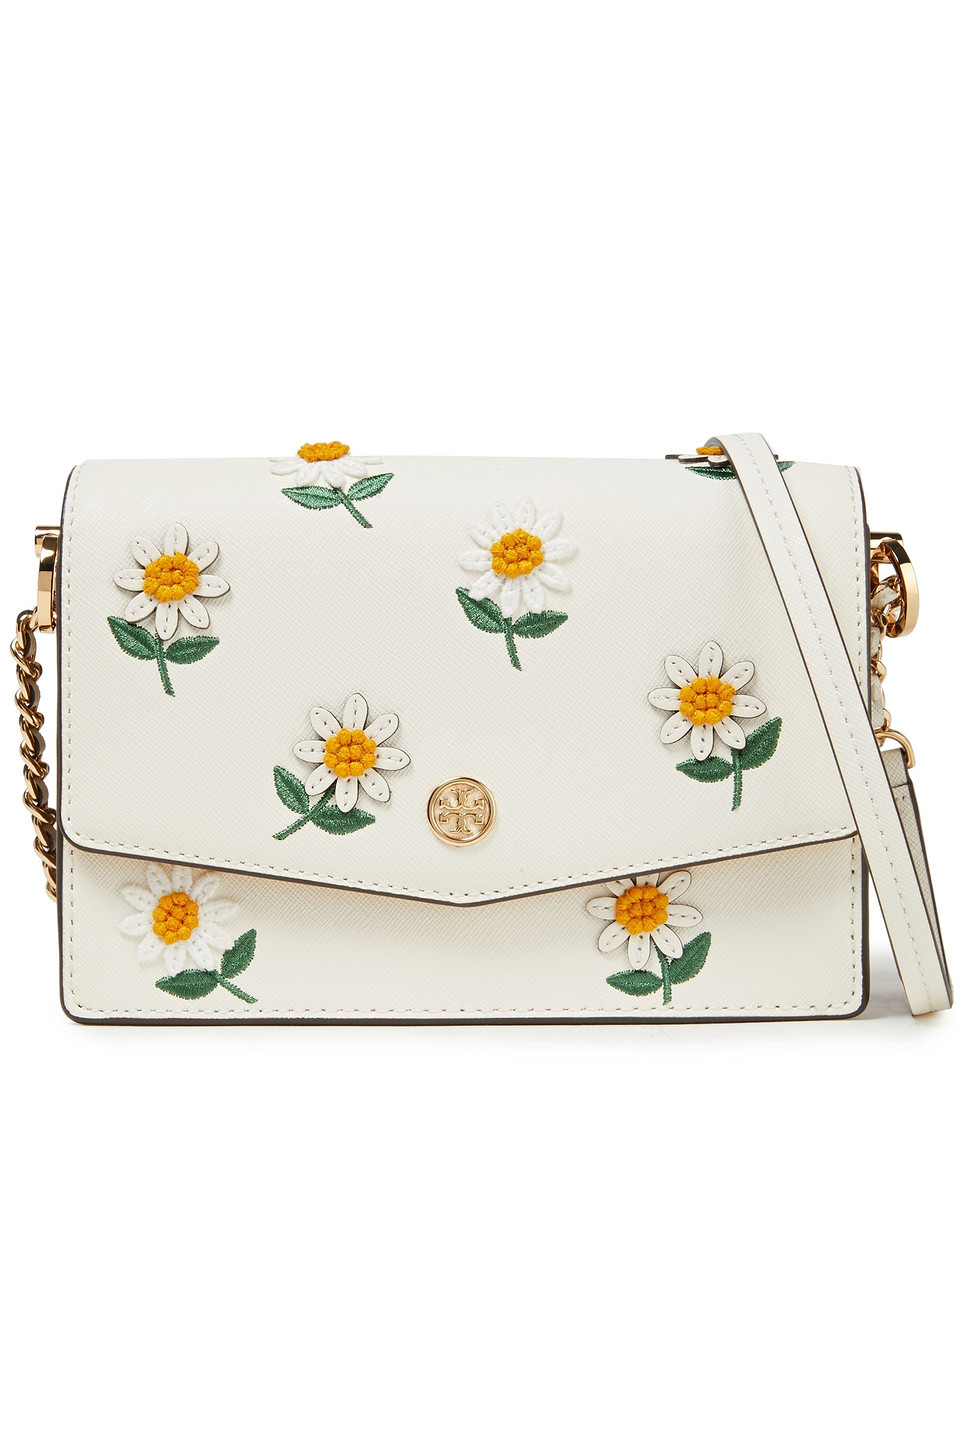 Tory Burch | Tory Burch Woman Floral-appliqued Textured-leather Shoulder Bag Ivory | Clouty